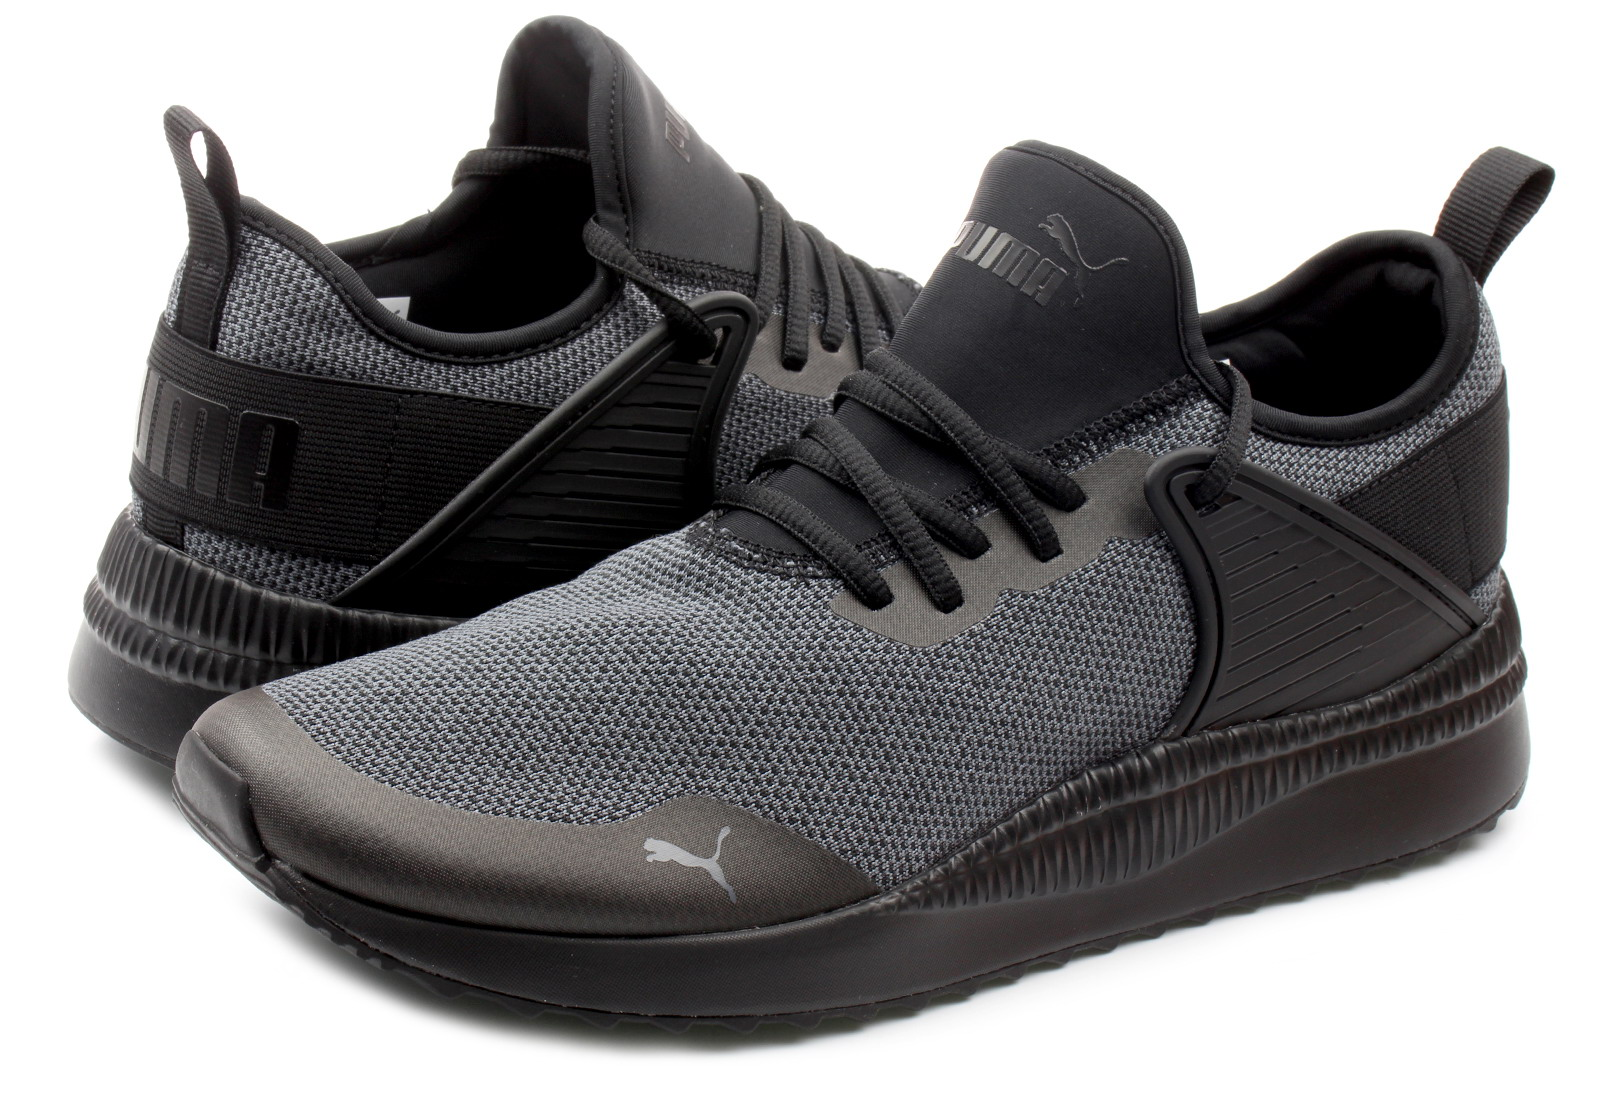 Puma Shoes - Pacer Next Cage Knit - 36666304-gry - Online shop for ... f75c91ae1